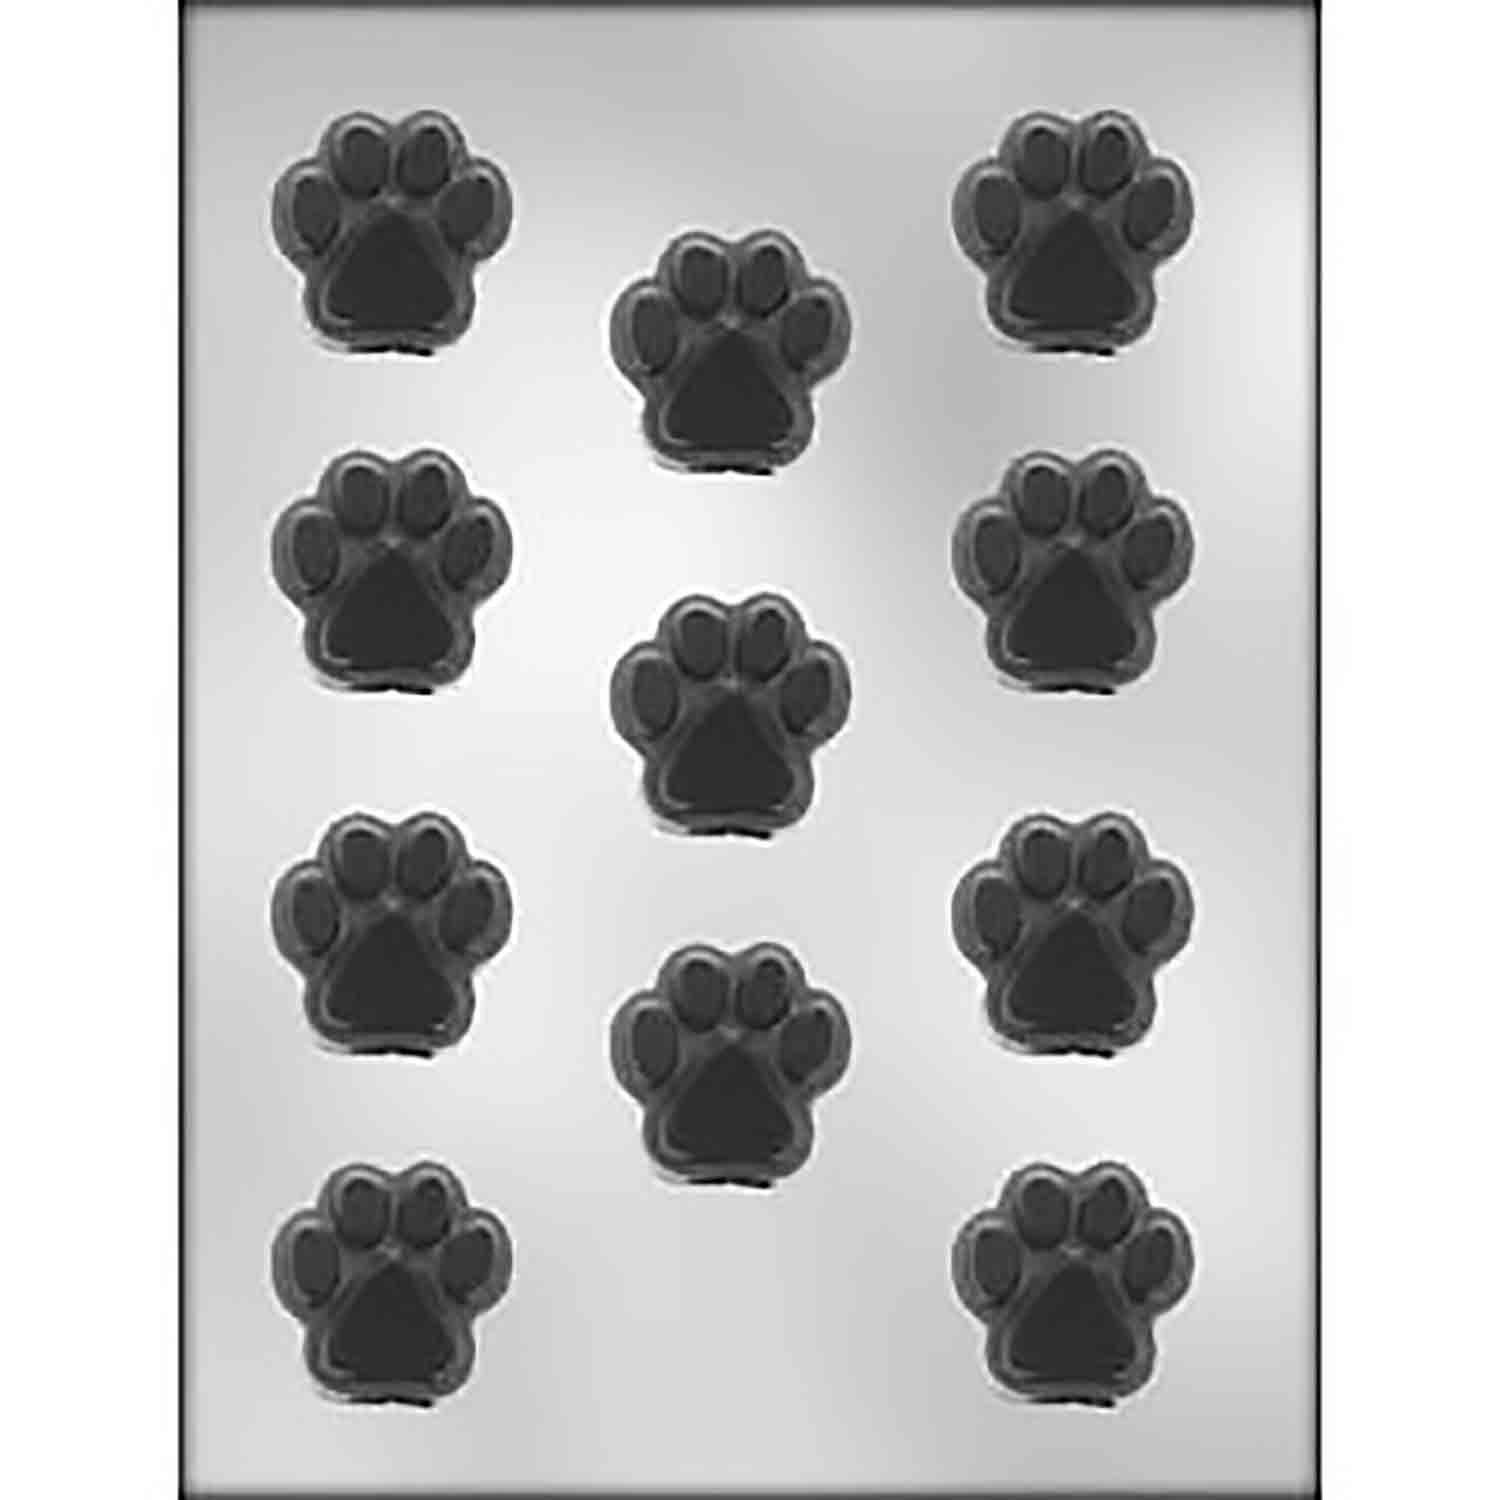 Paw Print Chocolate Candy Mold - 90-11275 | Country Kitchen SweetArt